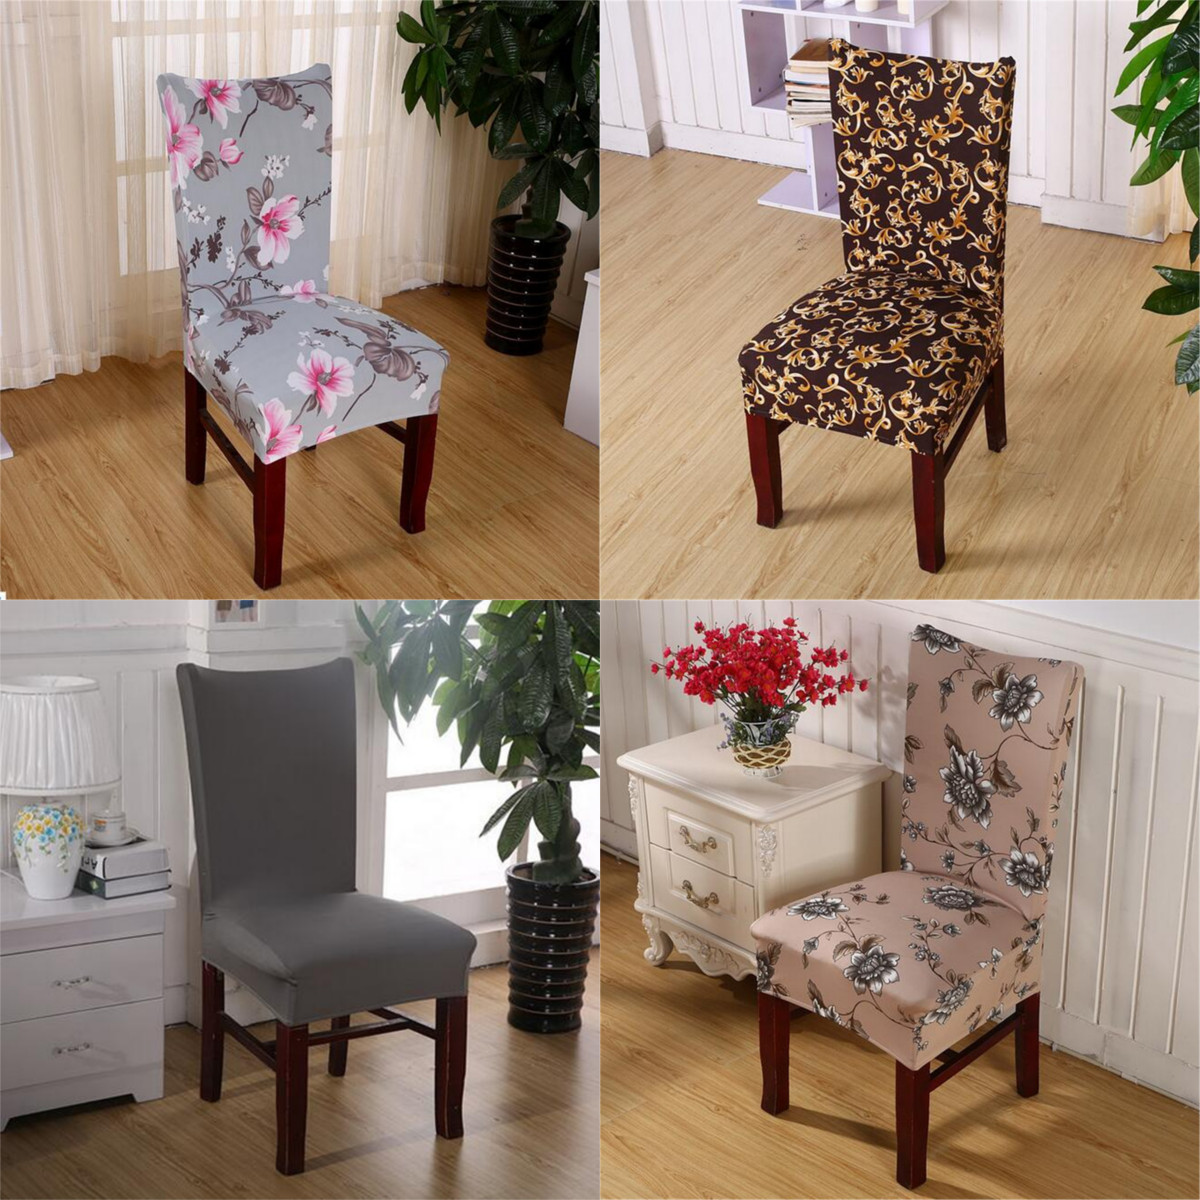 party chair covers walmart the factory soft spandex fit stretch short dining room with printed pattern banquet seat protector slipcover for hone hotel